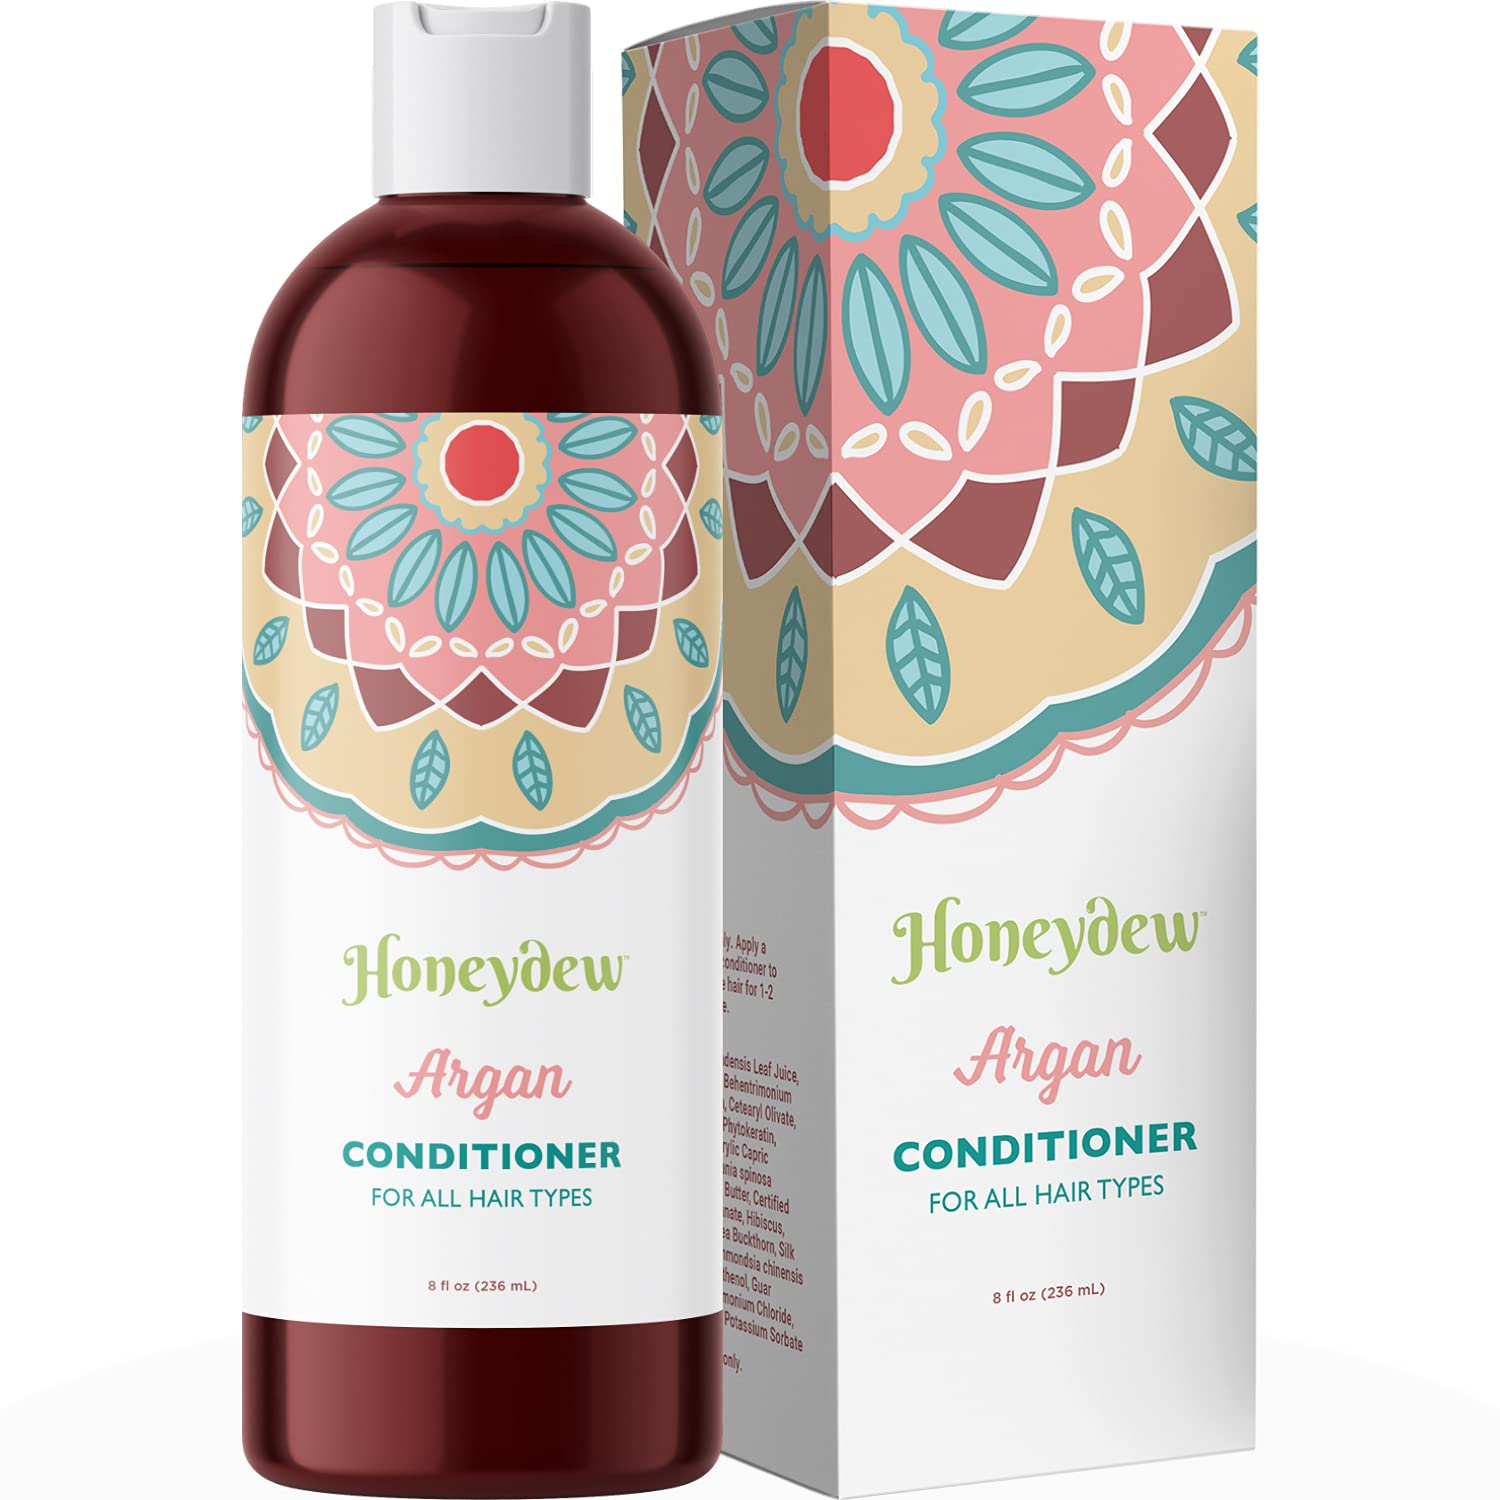 Moroccan Argan Max 73% OFF 2021new shipping free Oil Hair Conditioner Pomegranate with Butter Shea